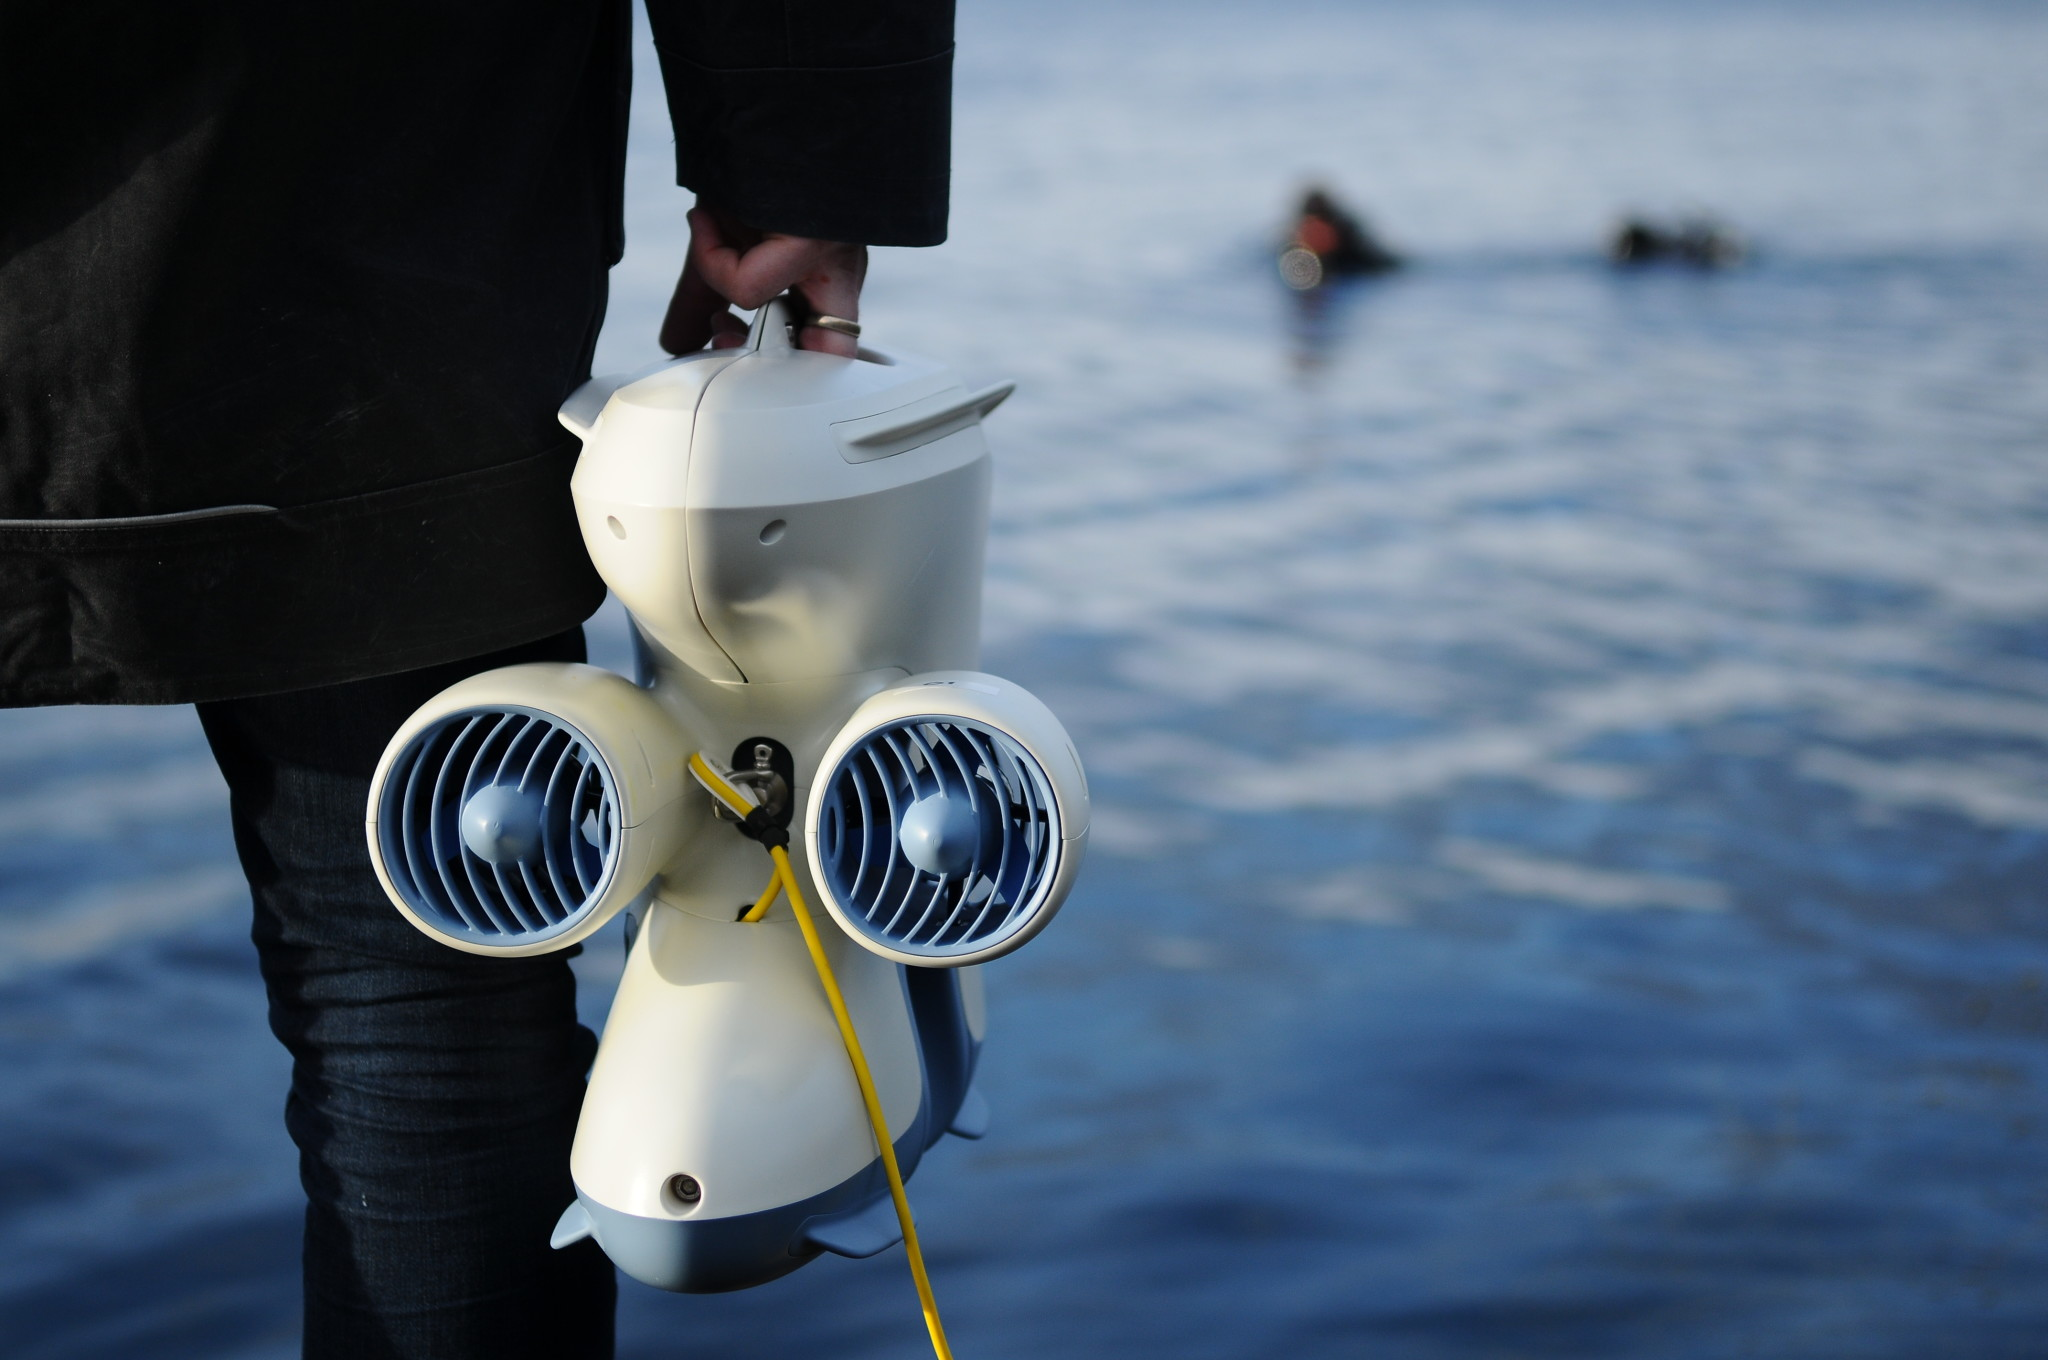 Ready to launch the Pioneer underwater drone